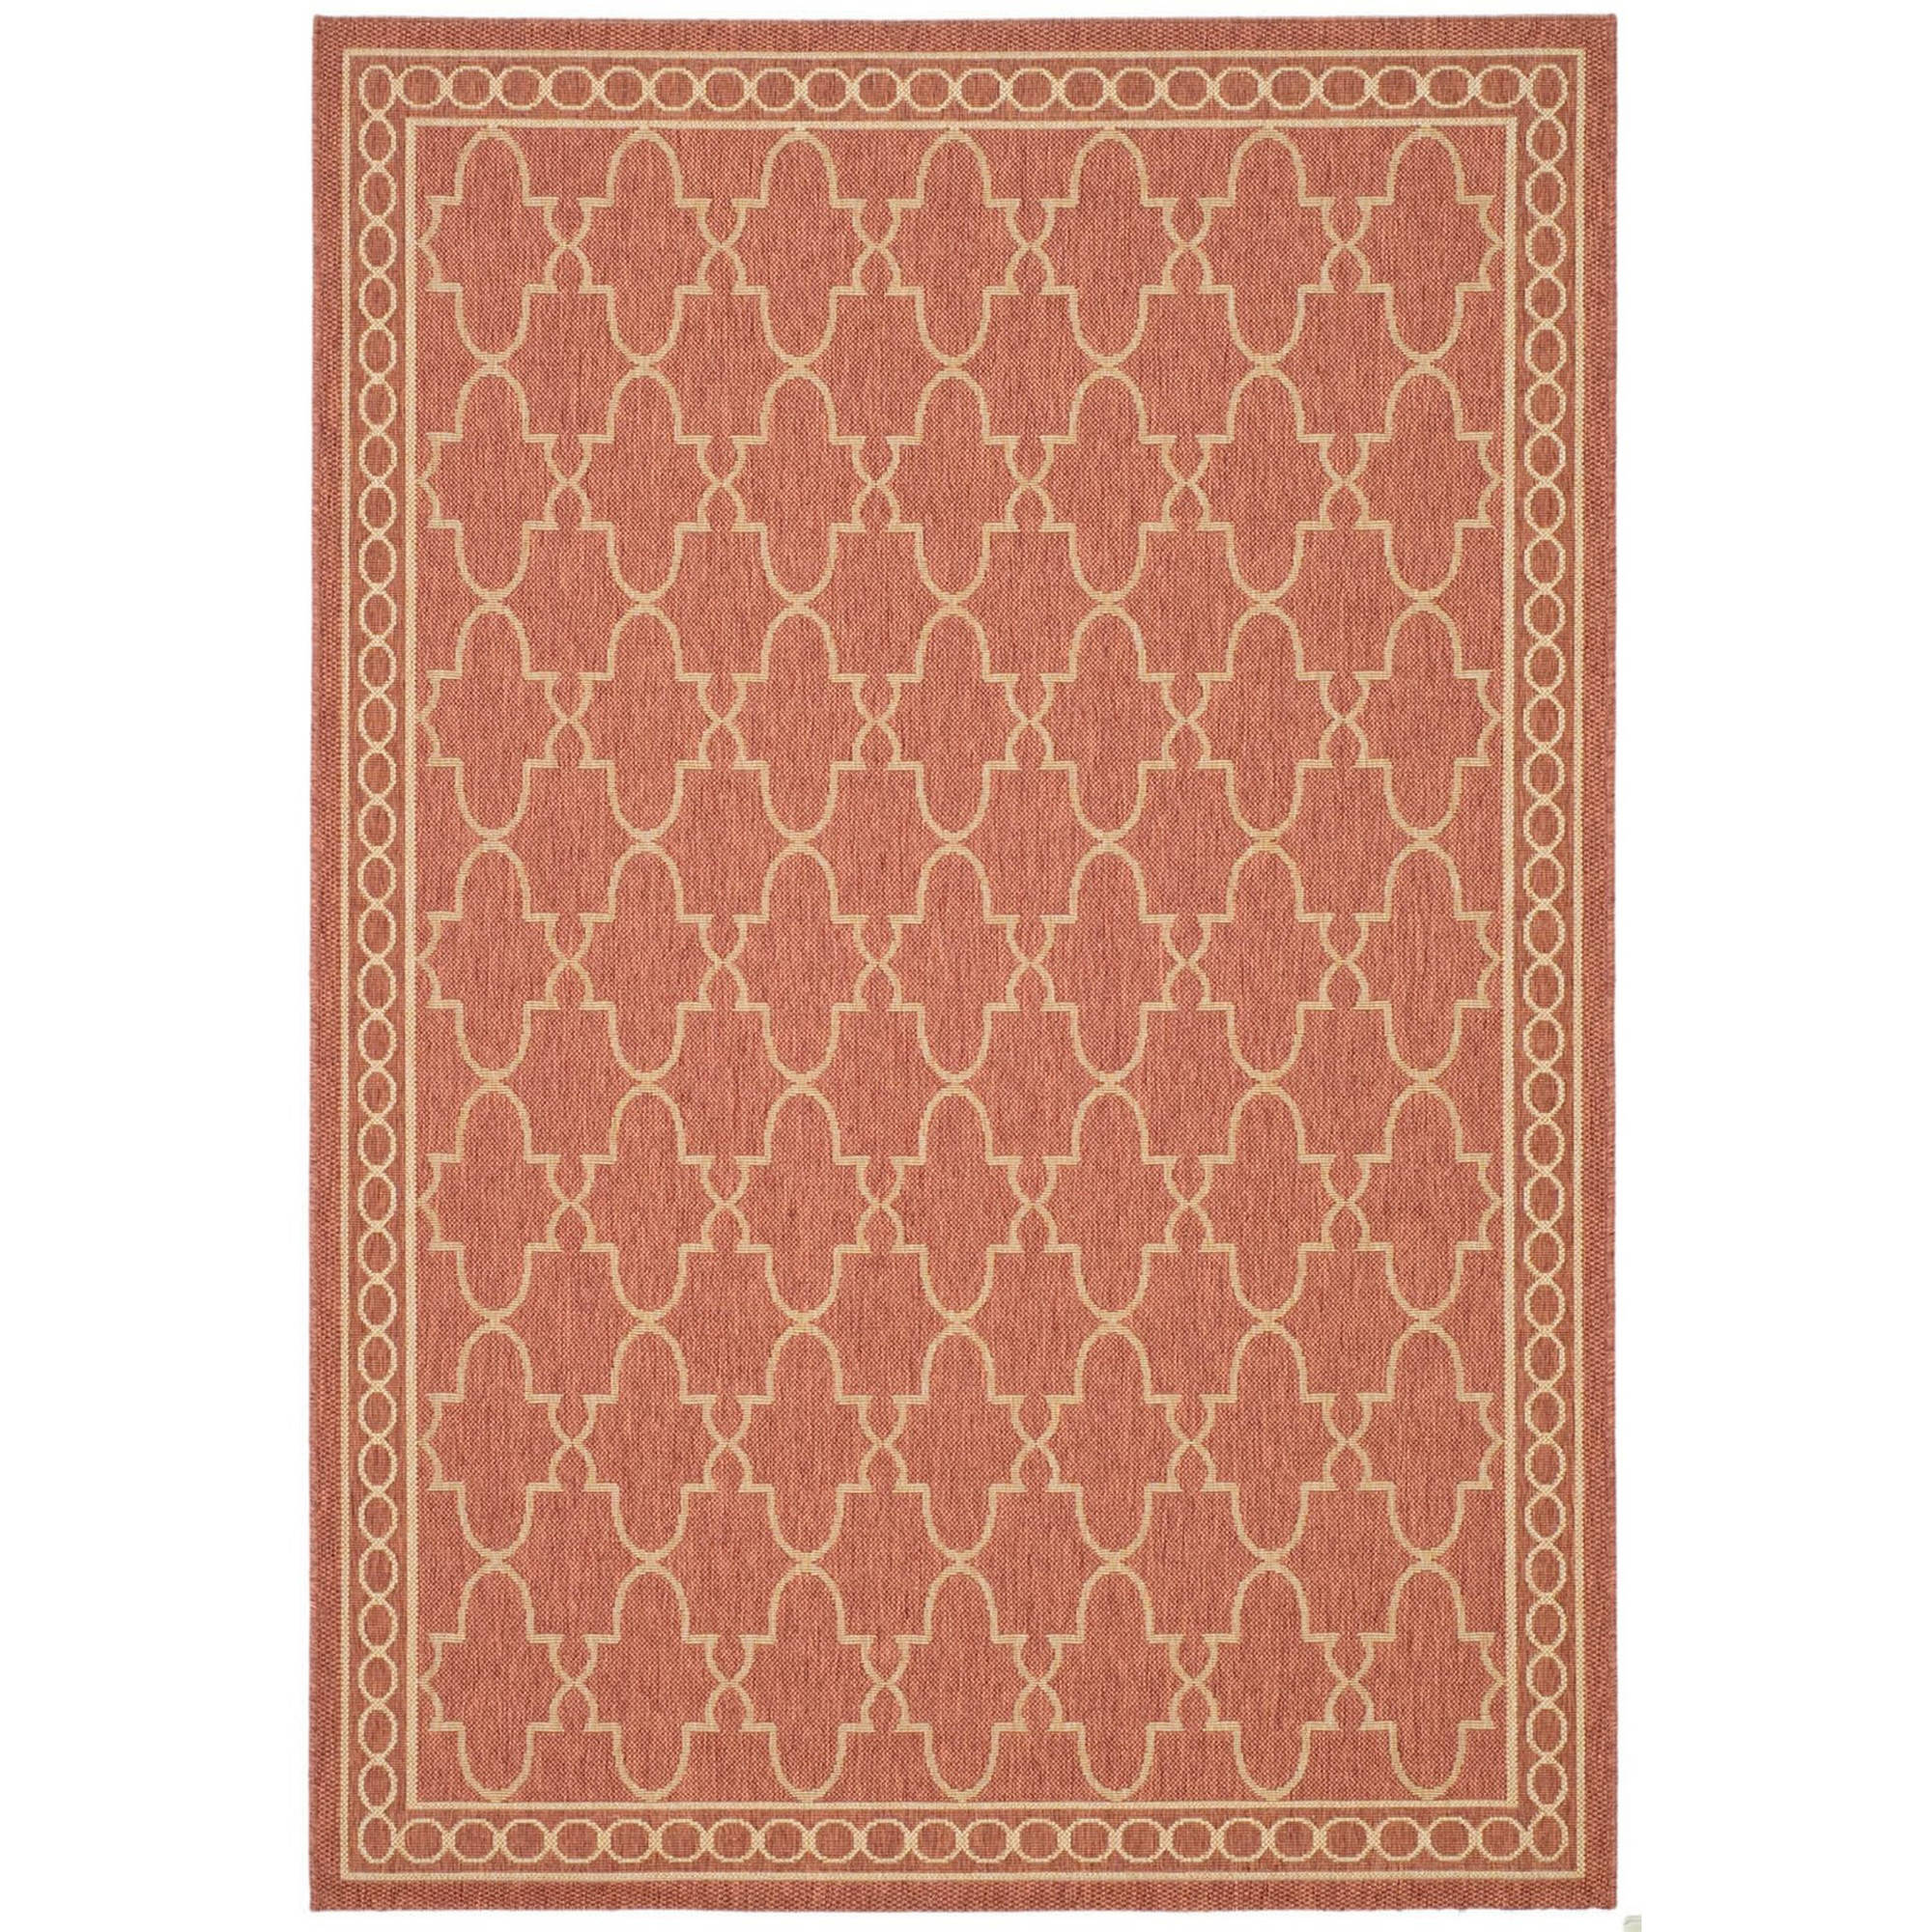 Safavieh Courtyard Chelsea Indoor/Outdoor Area Rug